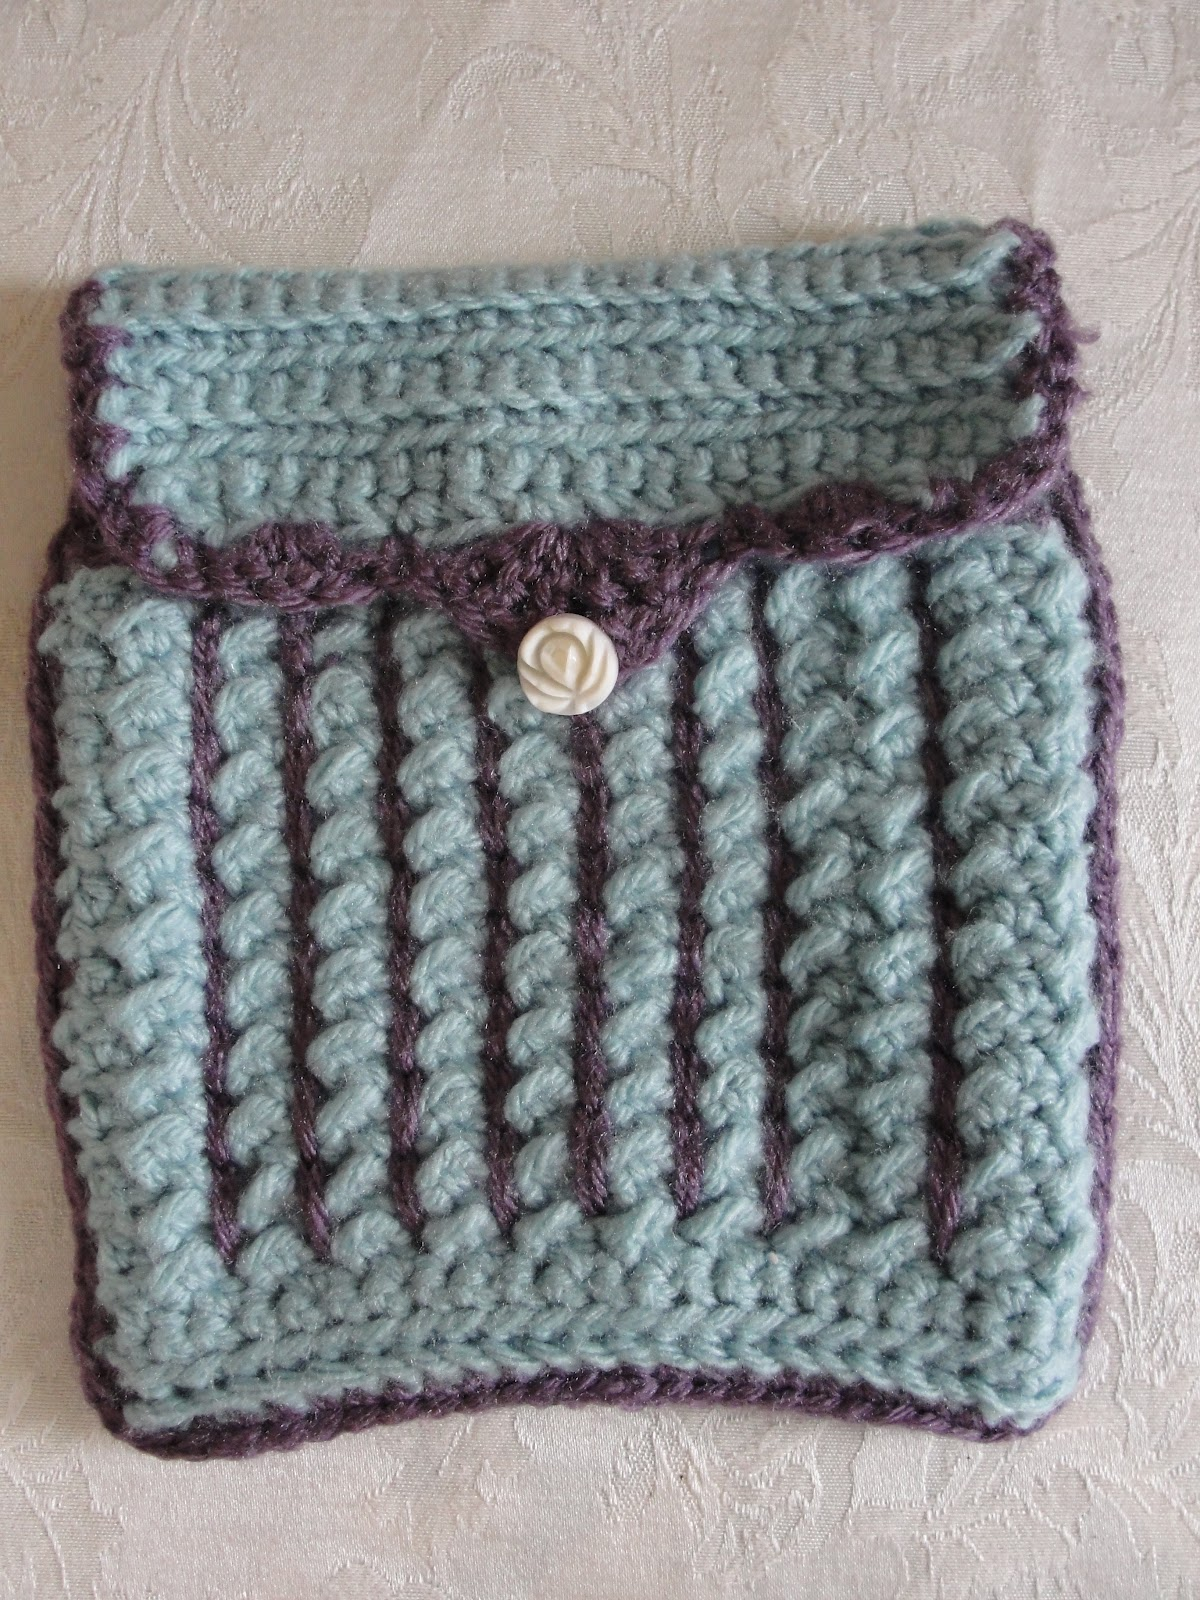 libertycrochet: crunch stitch crochet hook case*